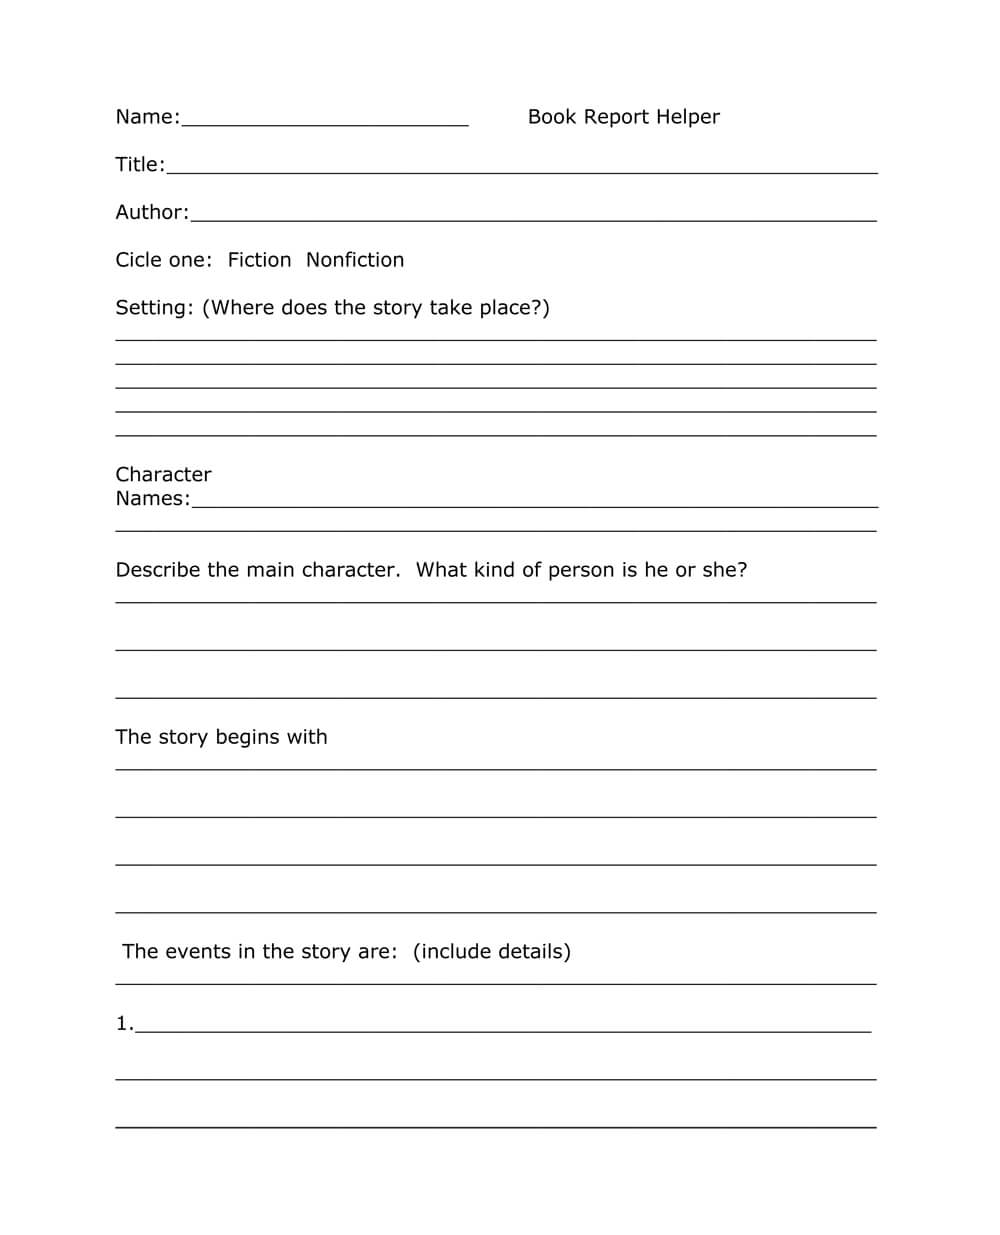 Book Report Templates From Custom Writing Service Intended For One Page Book Report Template